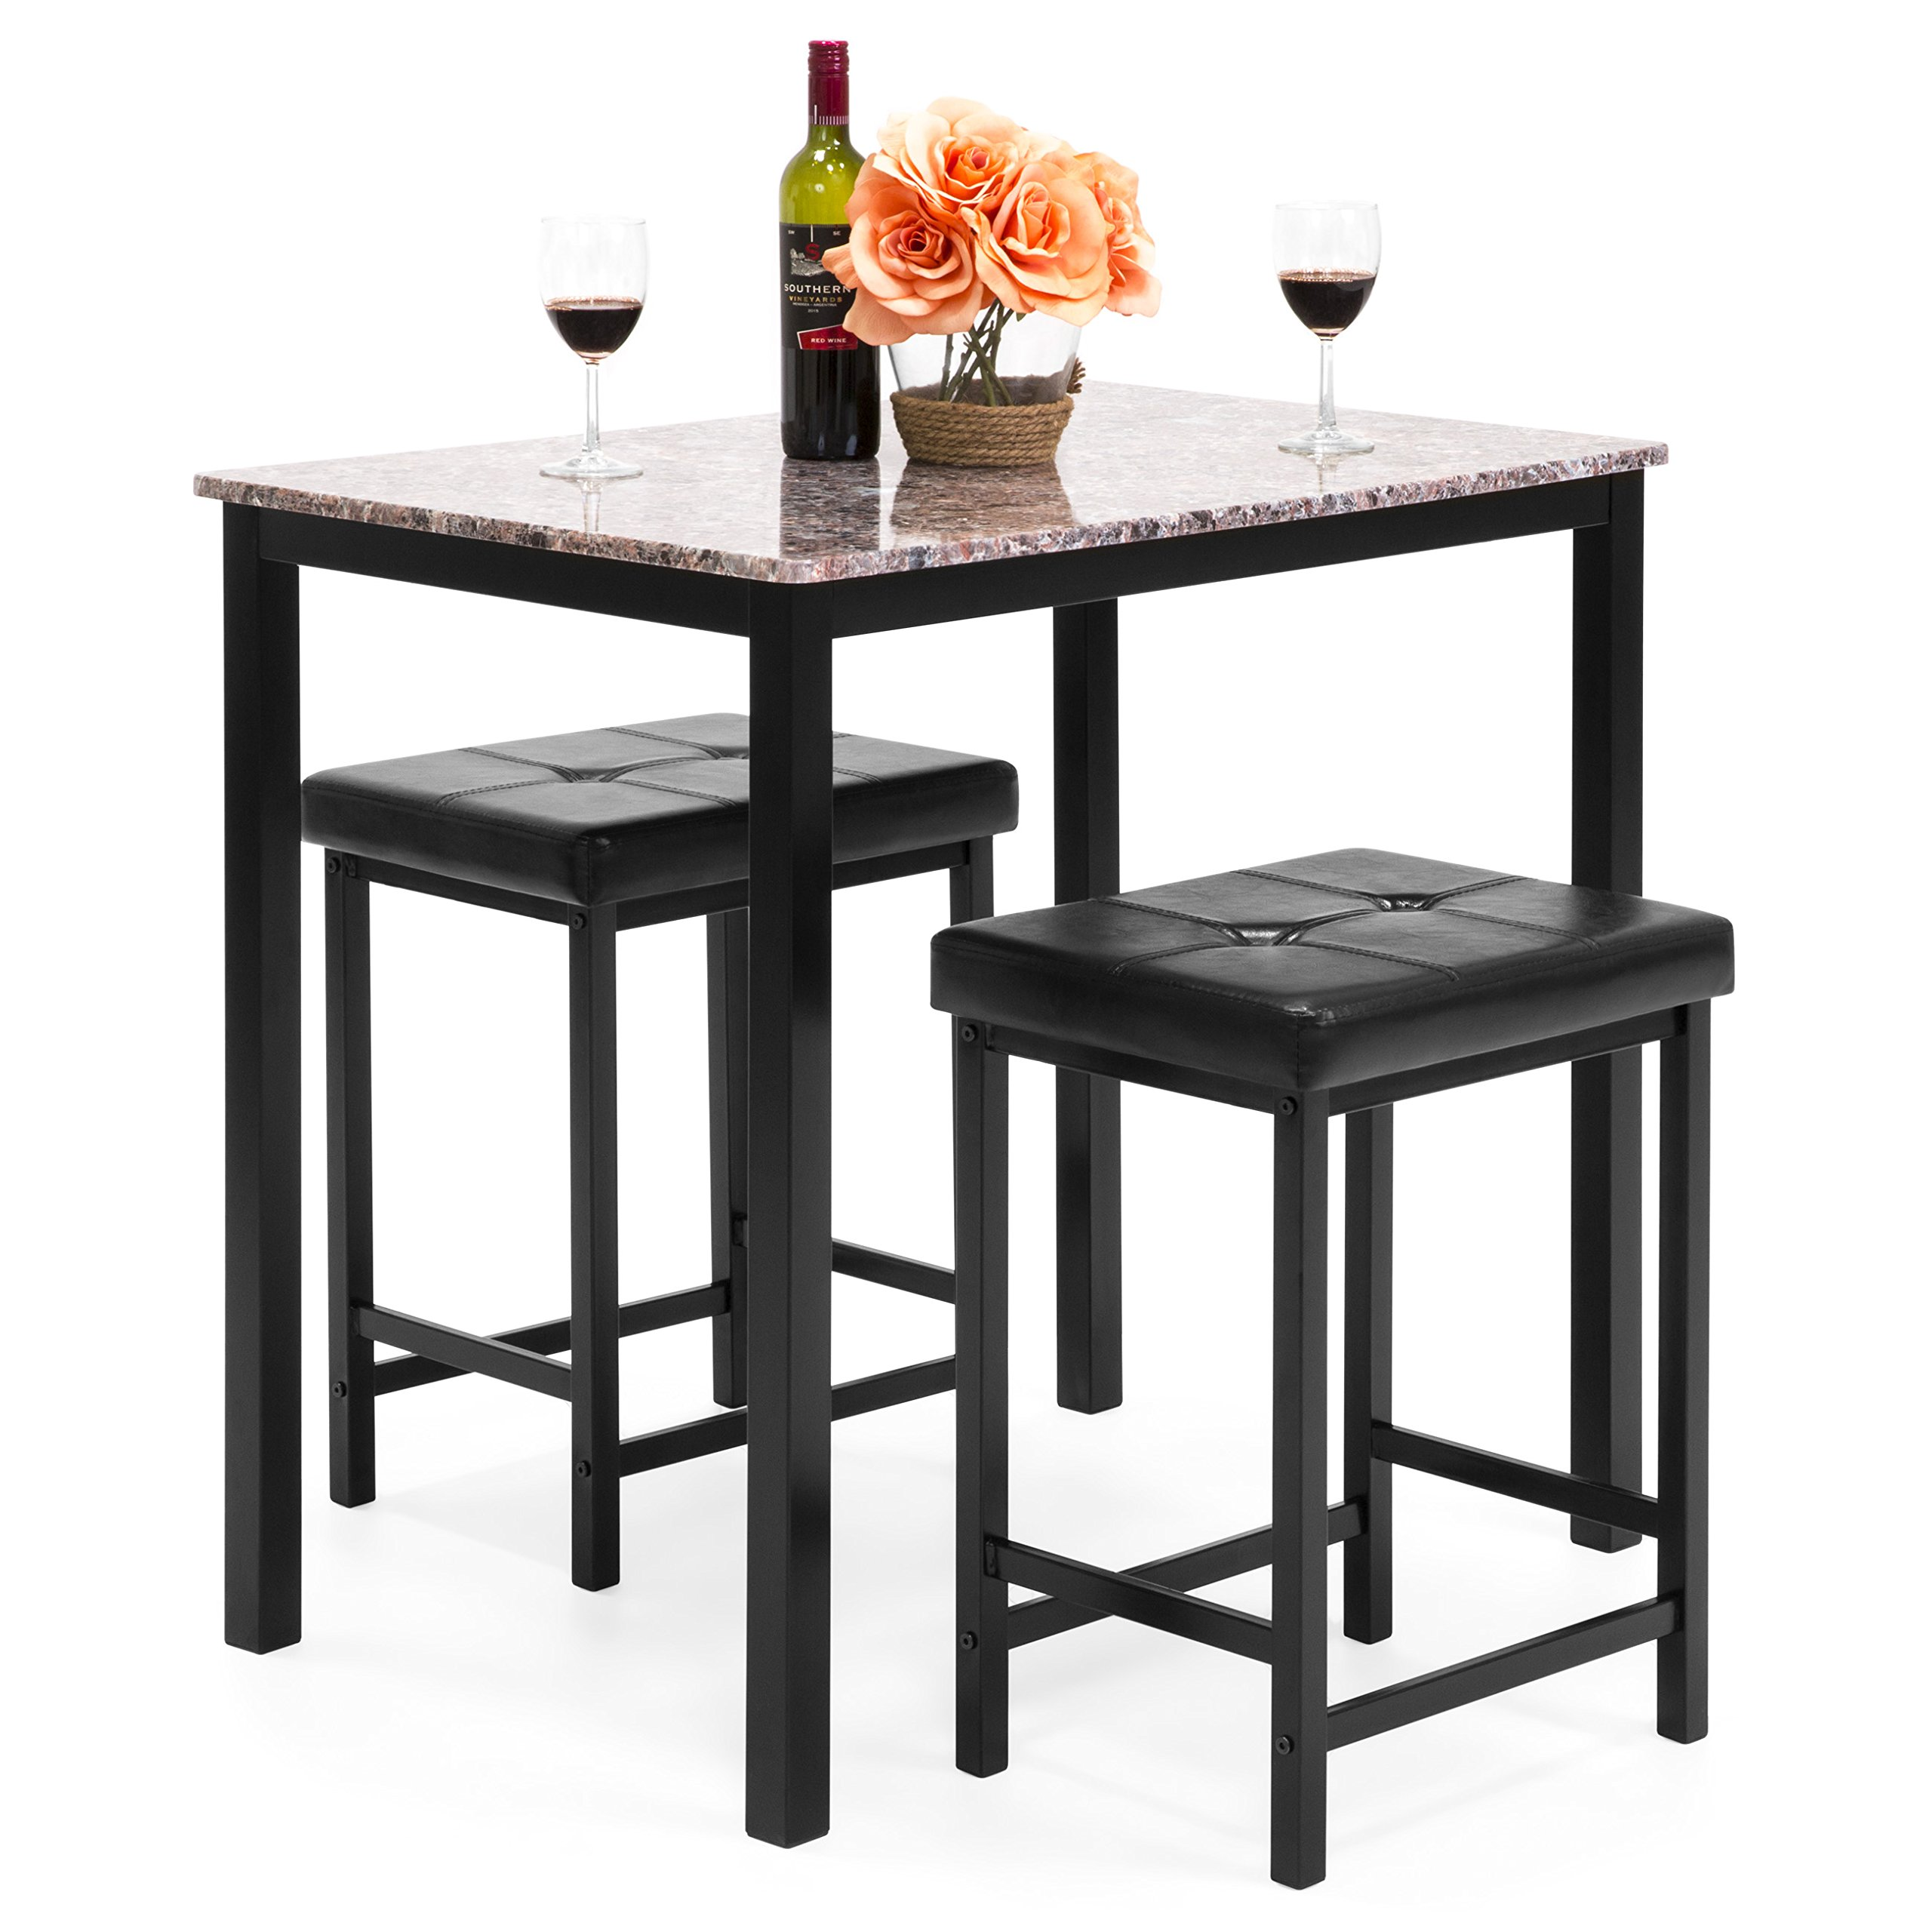 Best Choice Products Marble Counter Height Table Dining Set w/ 2 Faux Leather Stools by Best Choice Products